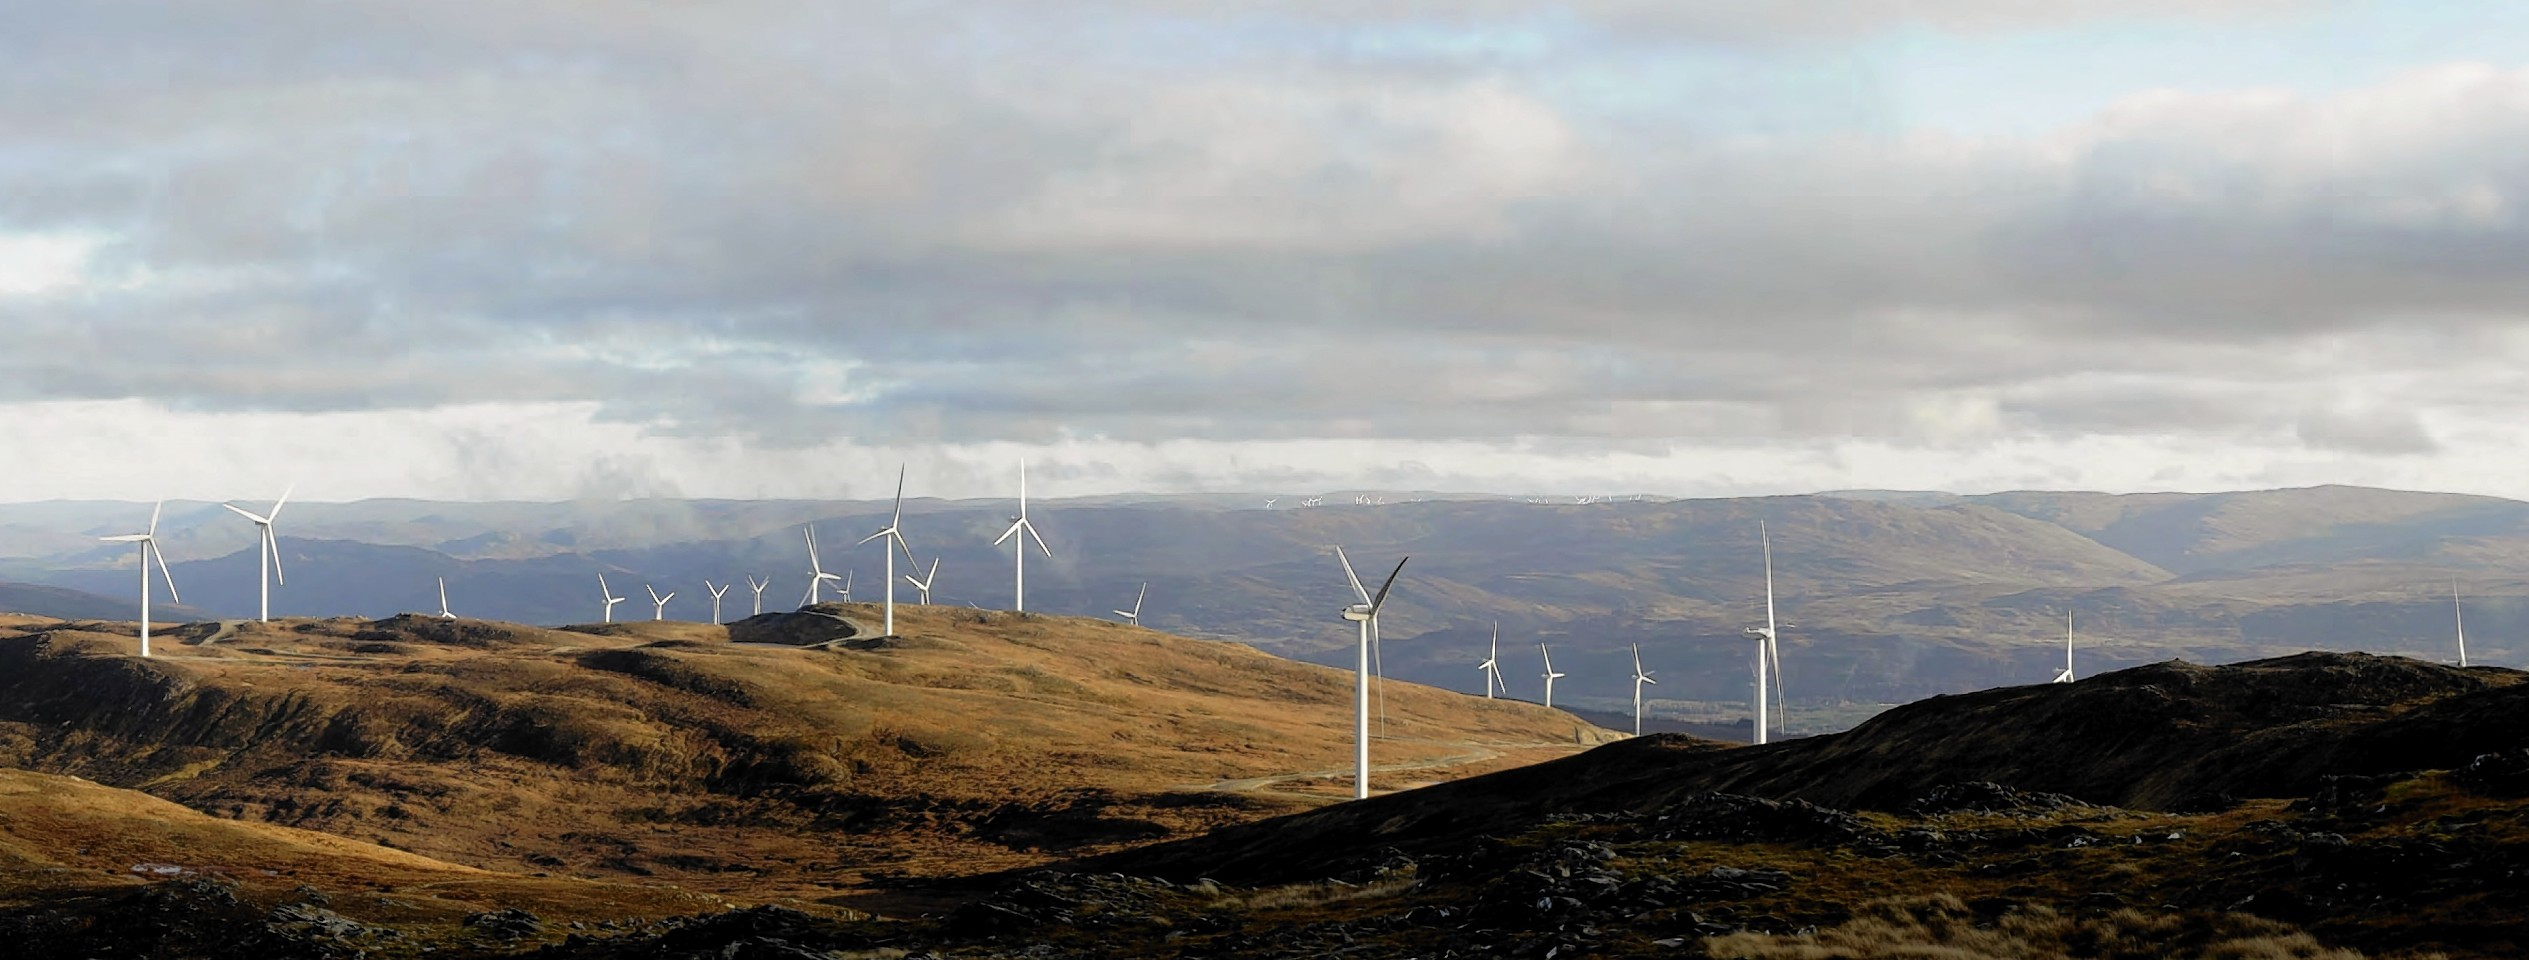 The proposed Stronelairg windfarm